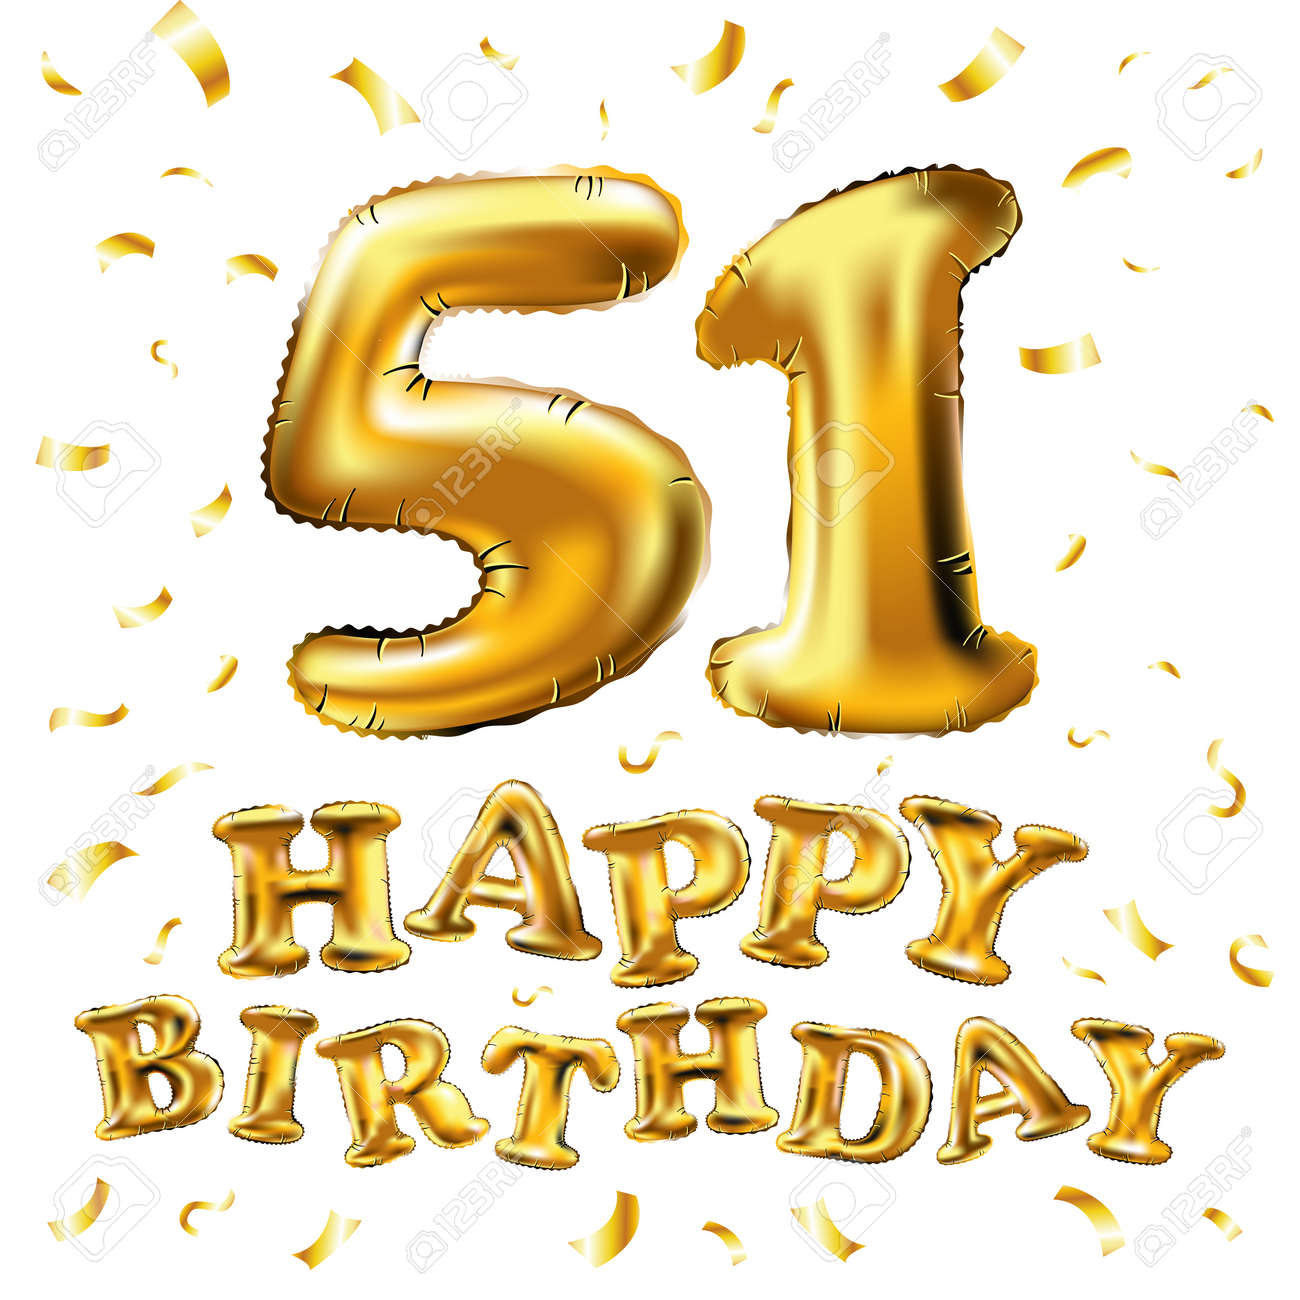 Vector Happy Birthday 51st Celebration Gold Balloons And Golden.. Royalty  Free Cliparts, Vectors, And Stock Illustration. Image 95975836.